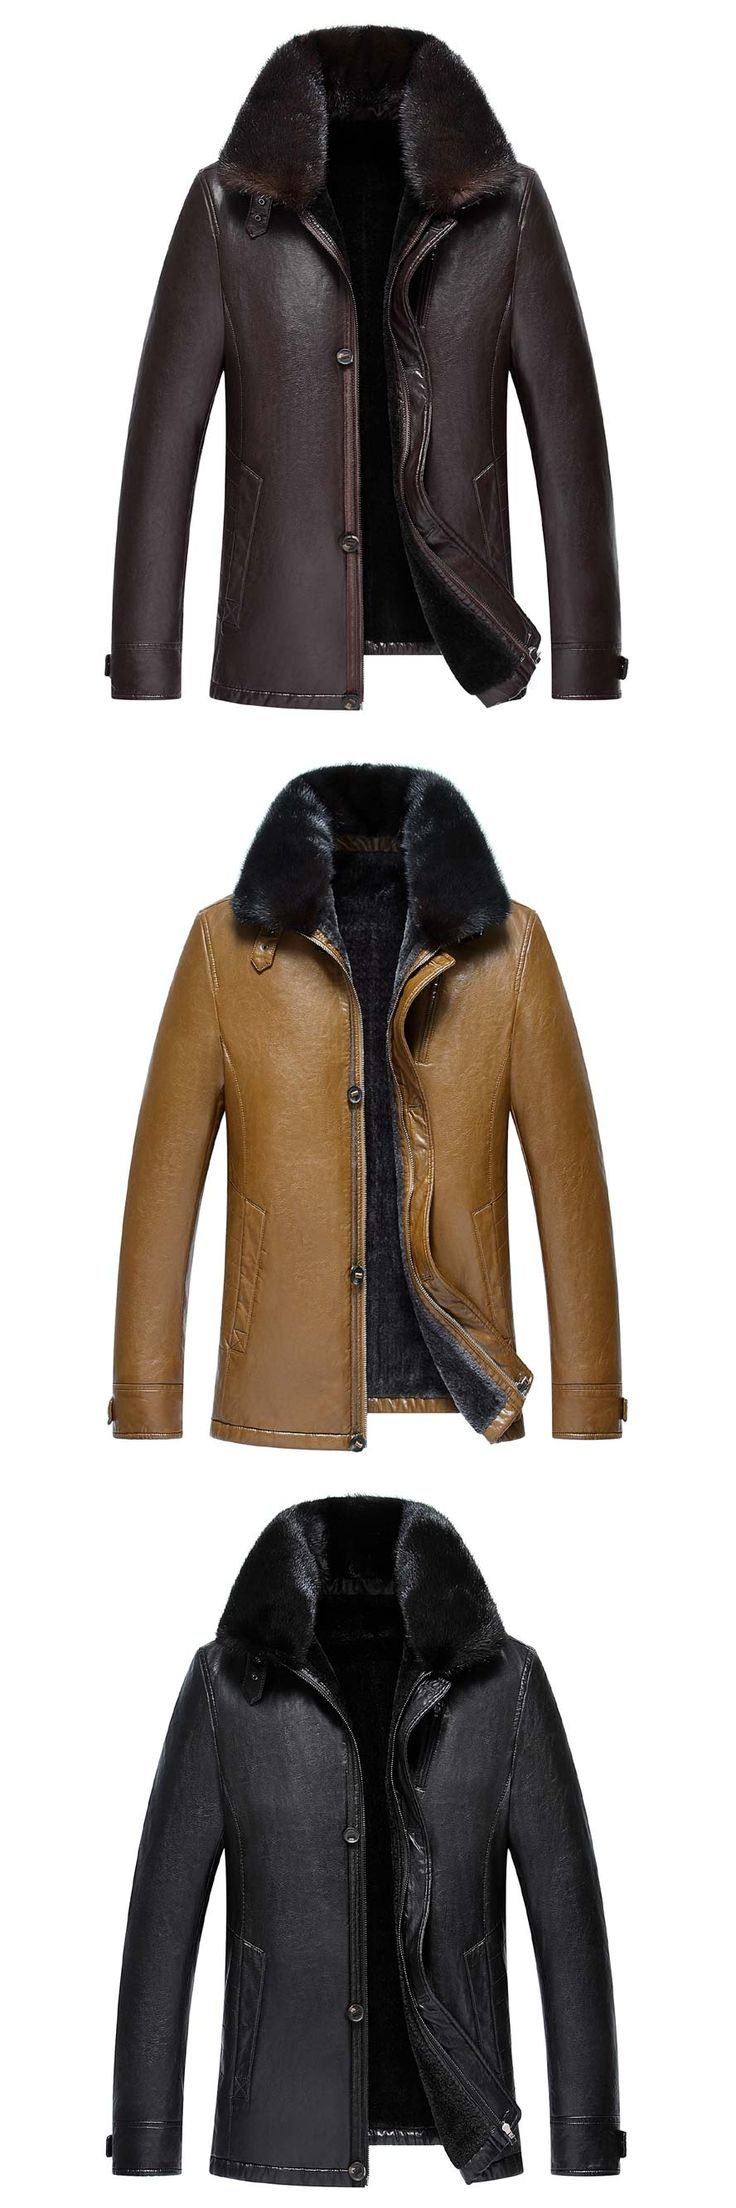 New Winter Warm -20 Degree Russia Men PU Leather Coats Fur Inside Snow Jackets with really fur collar